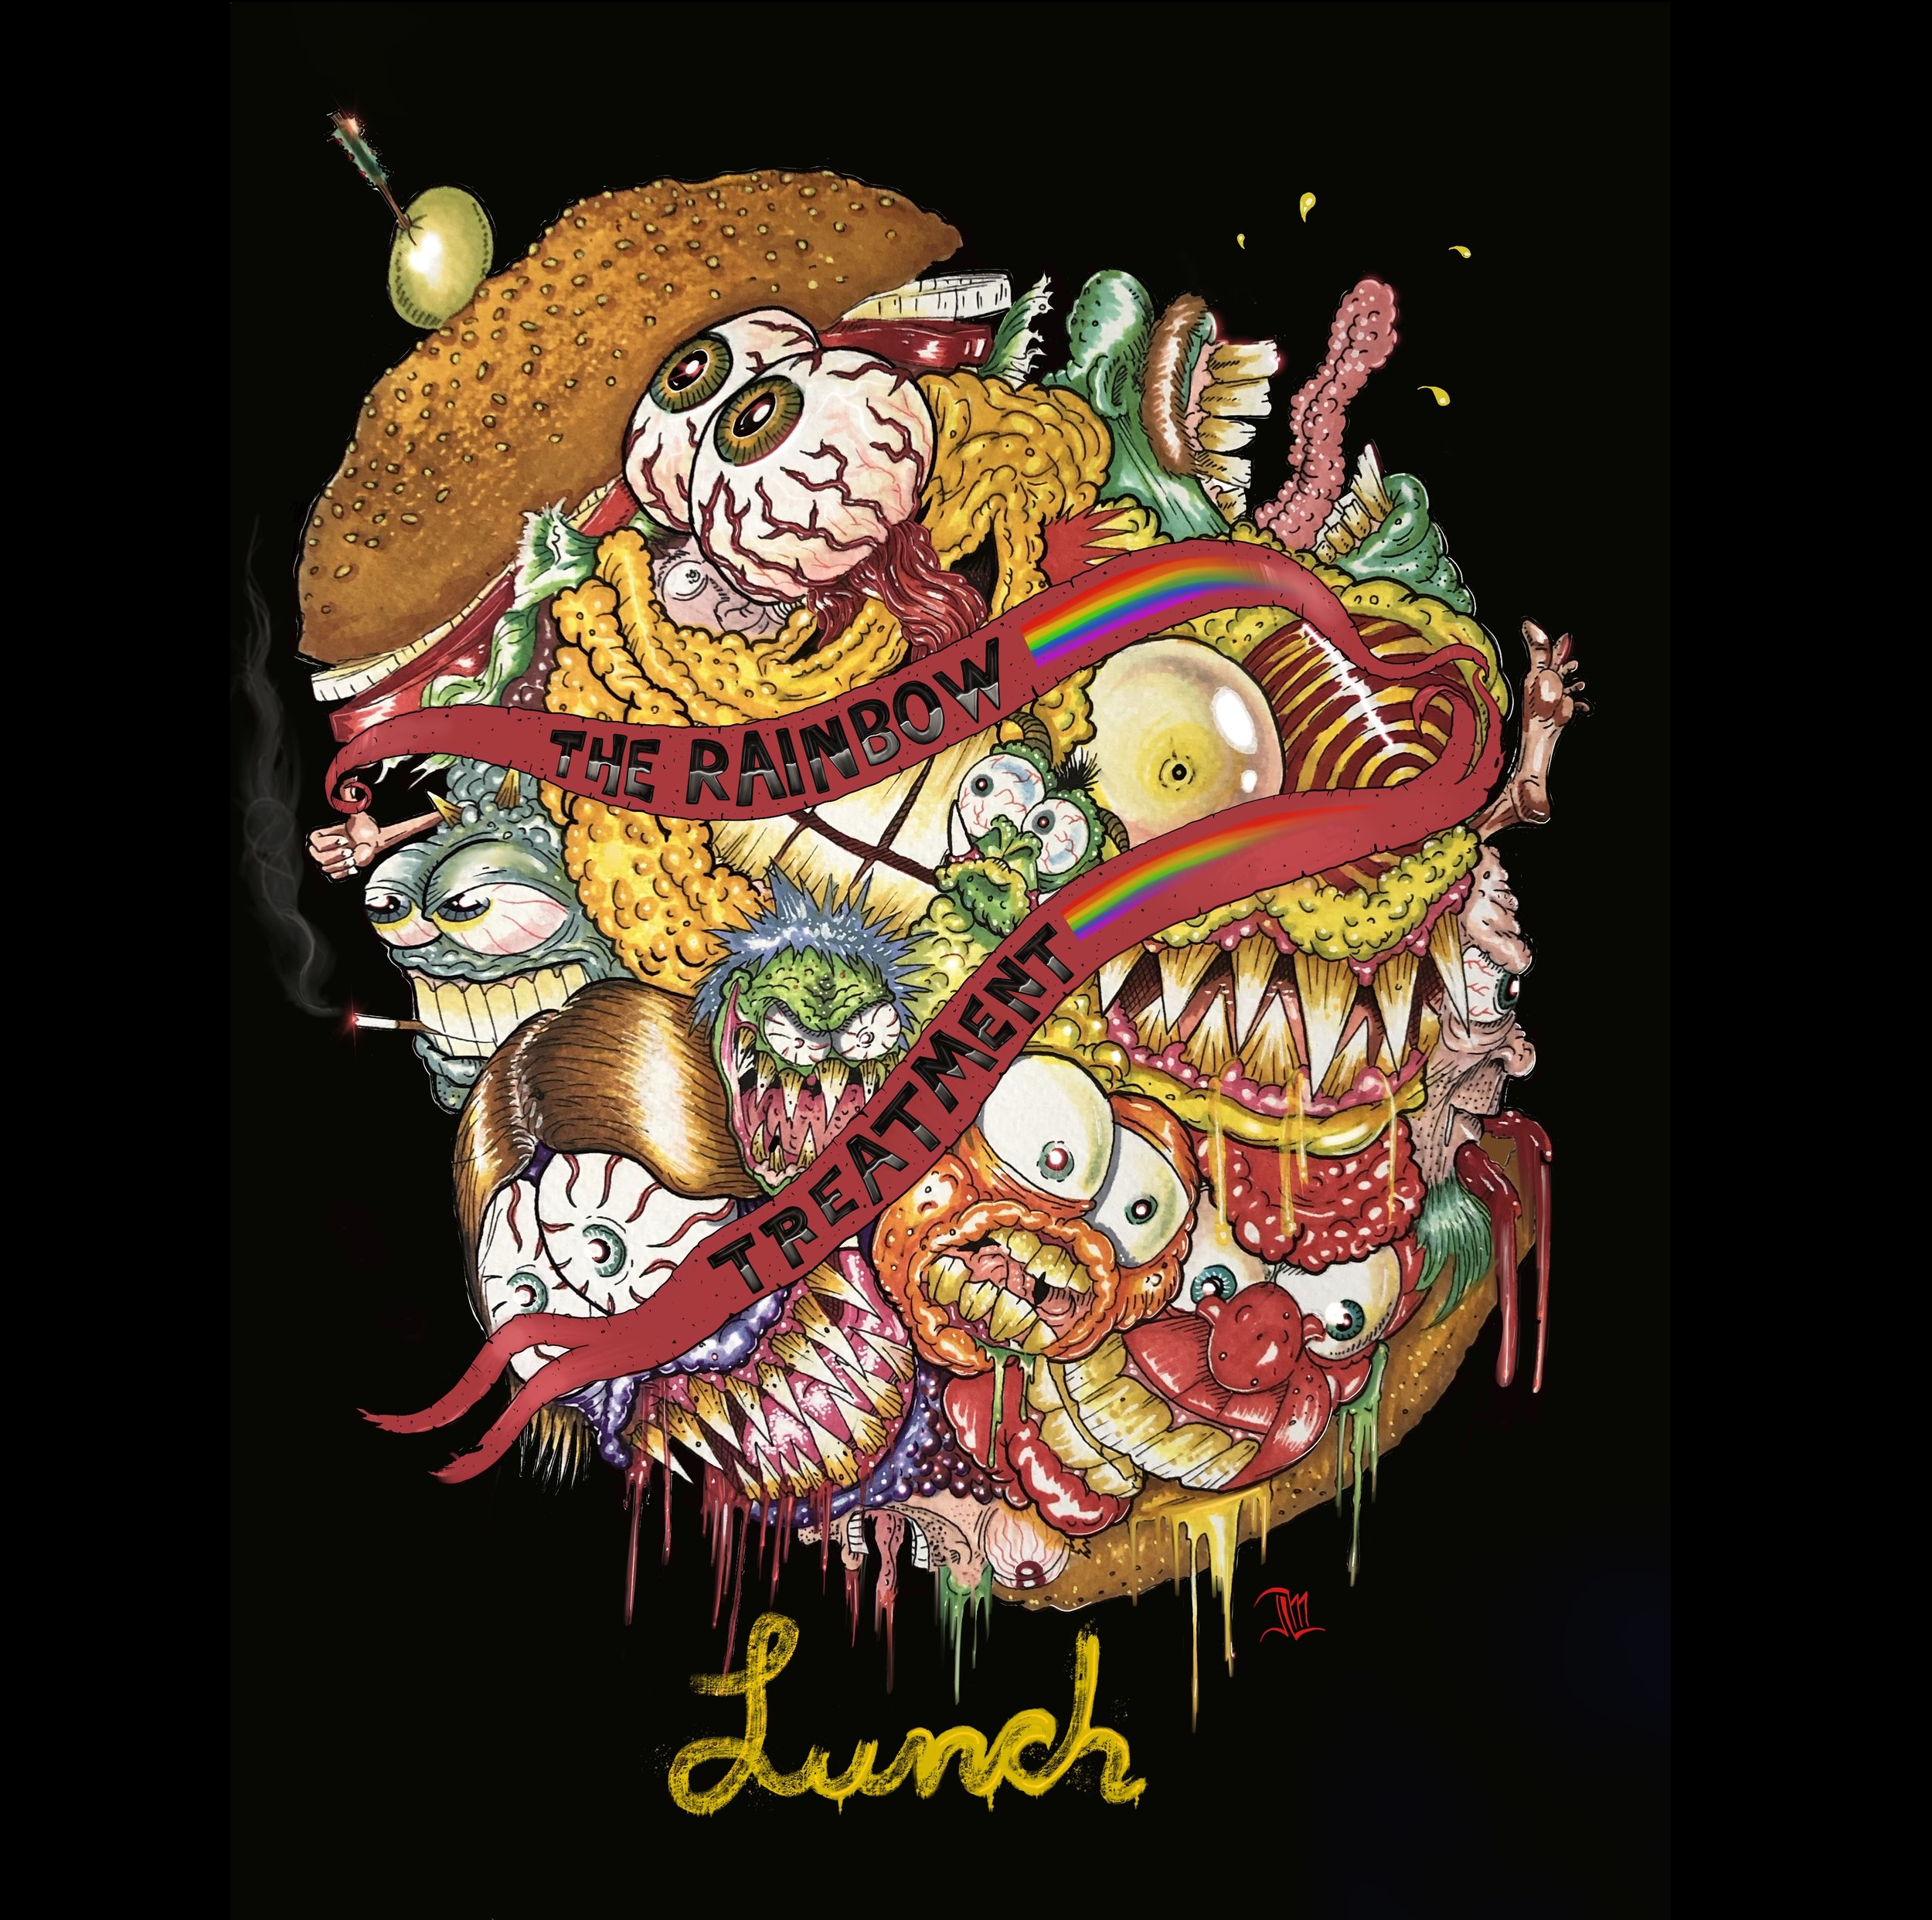 Lunch Cover Jpg.jpg